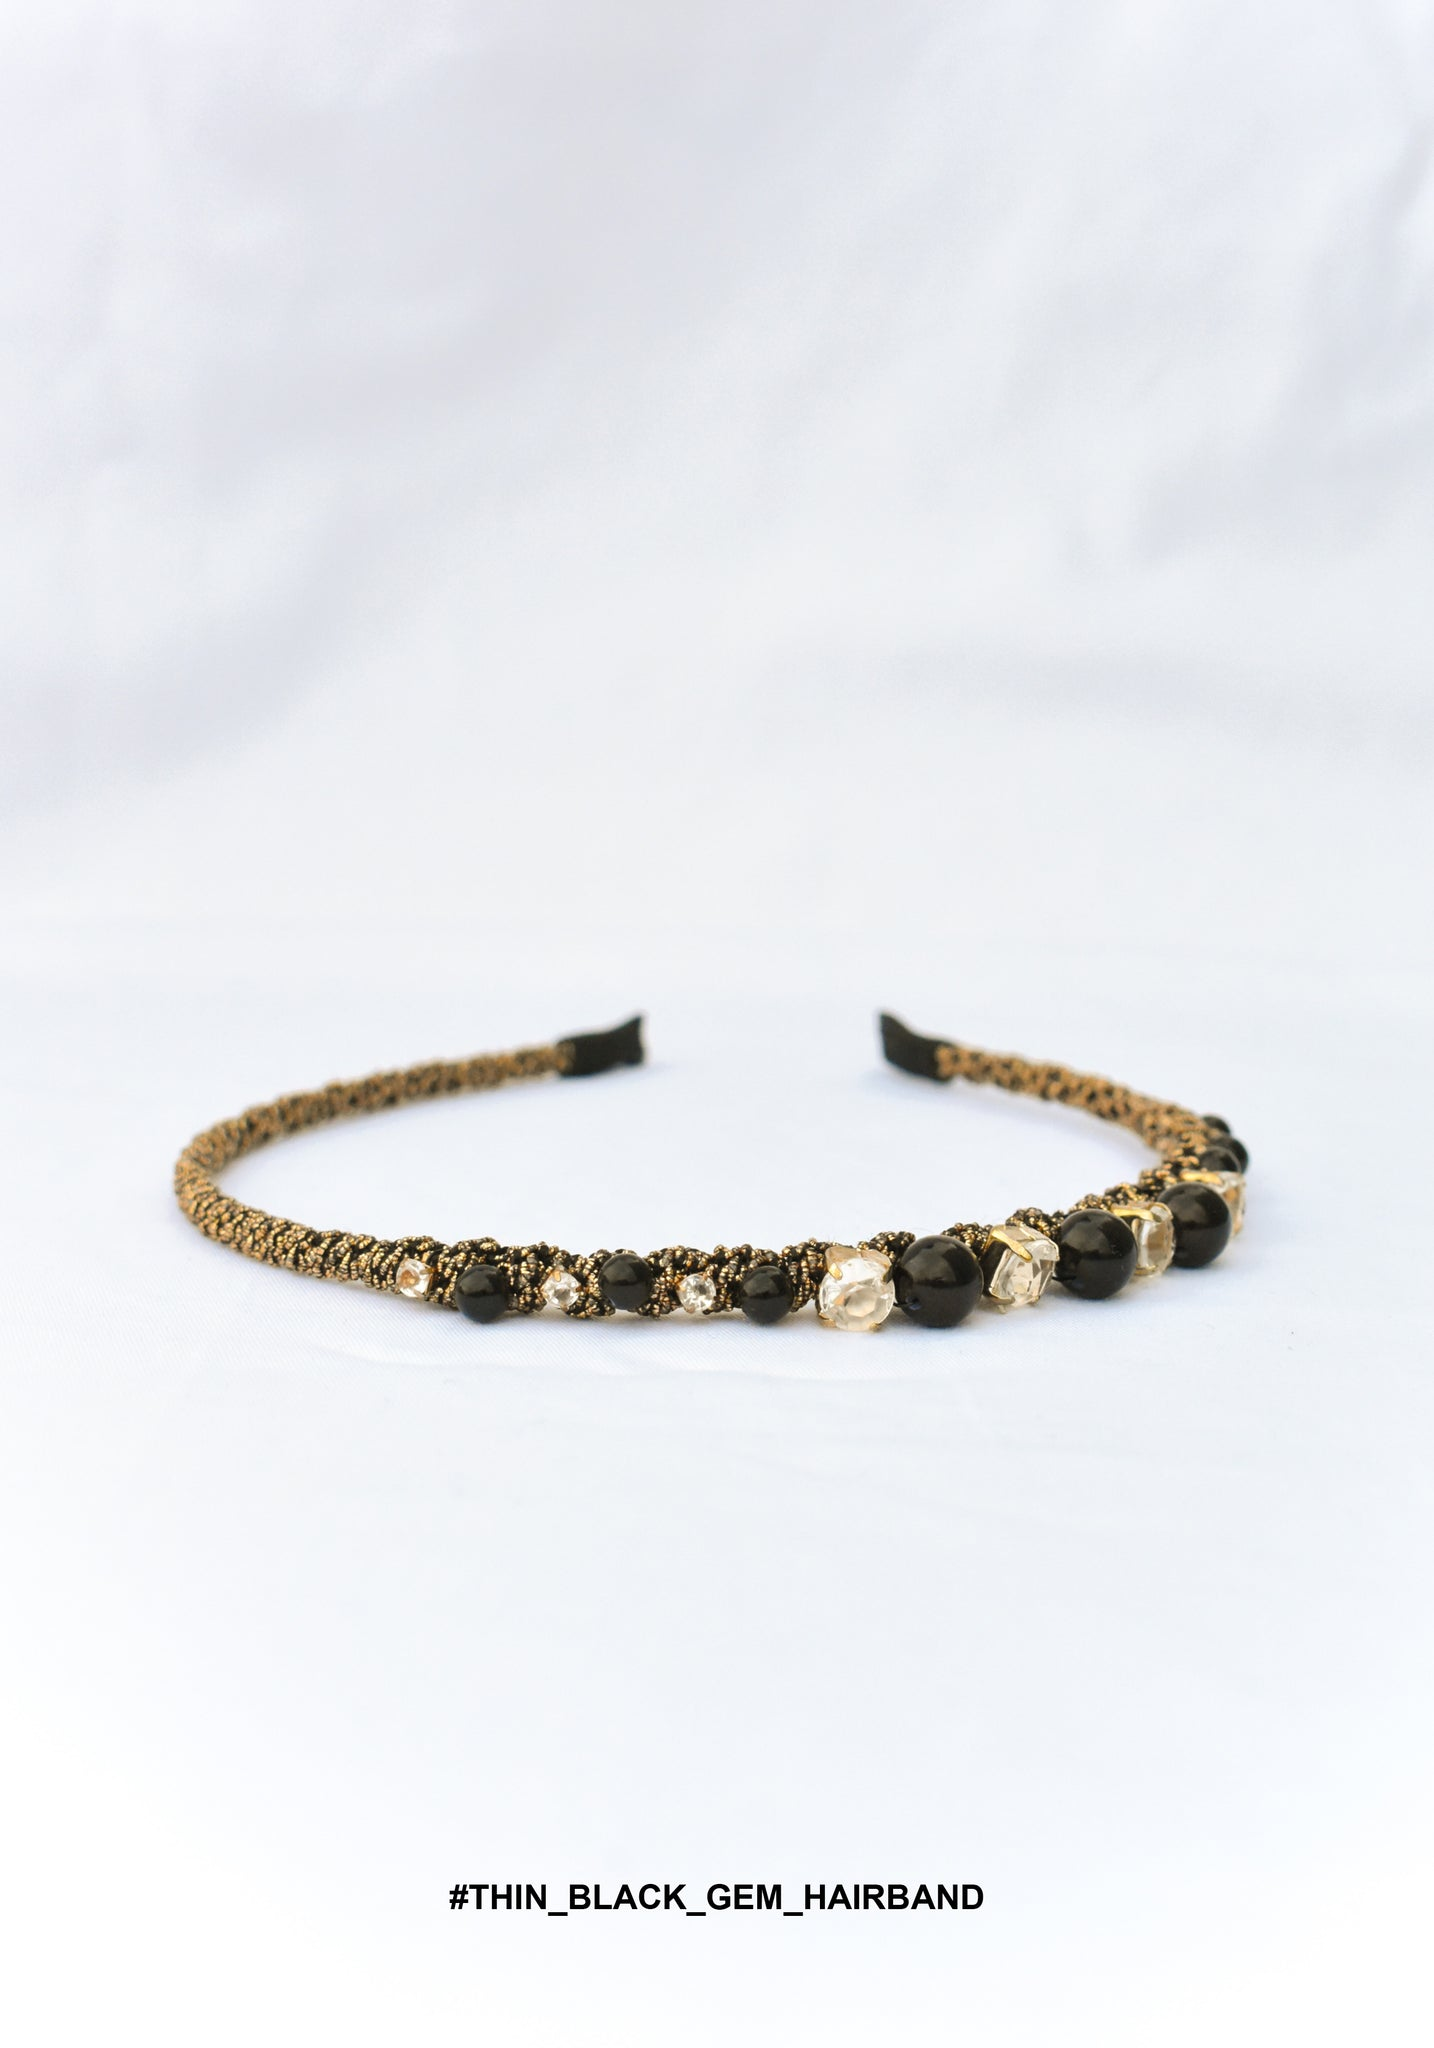 Thin Black Gem Hairband - whoami